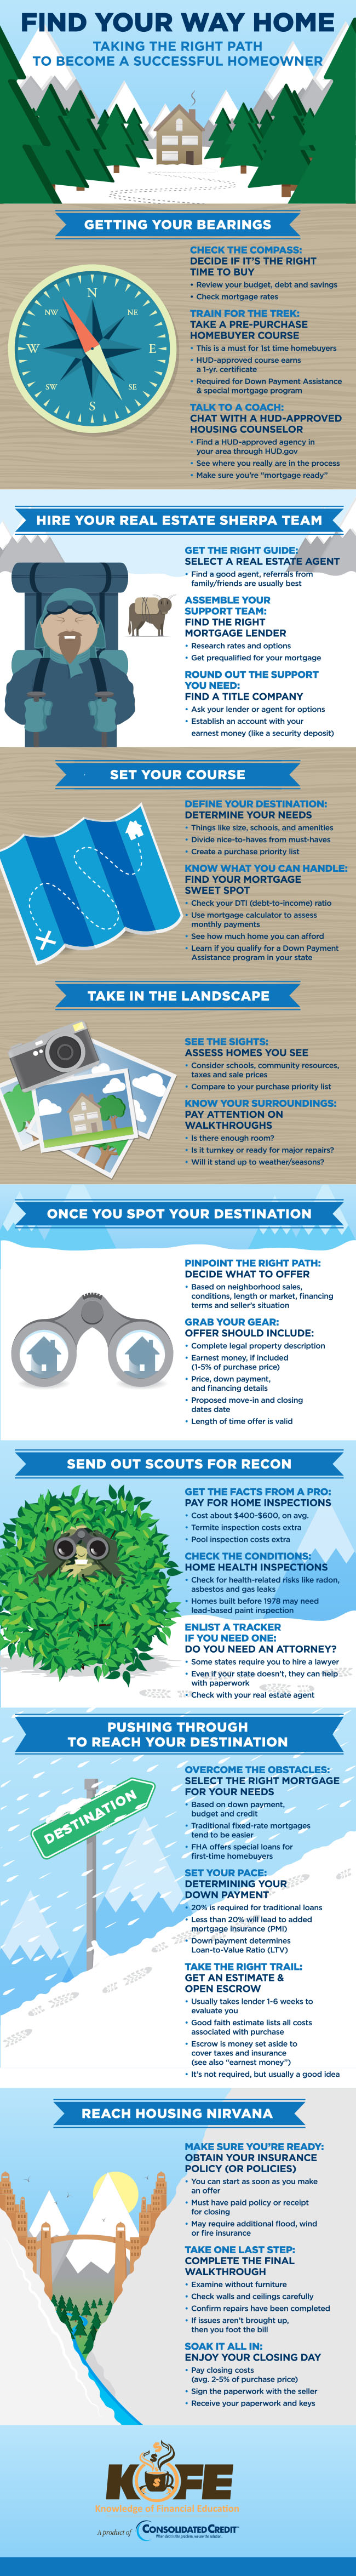 Find Your Way Home infographic